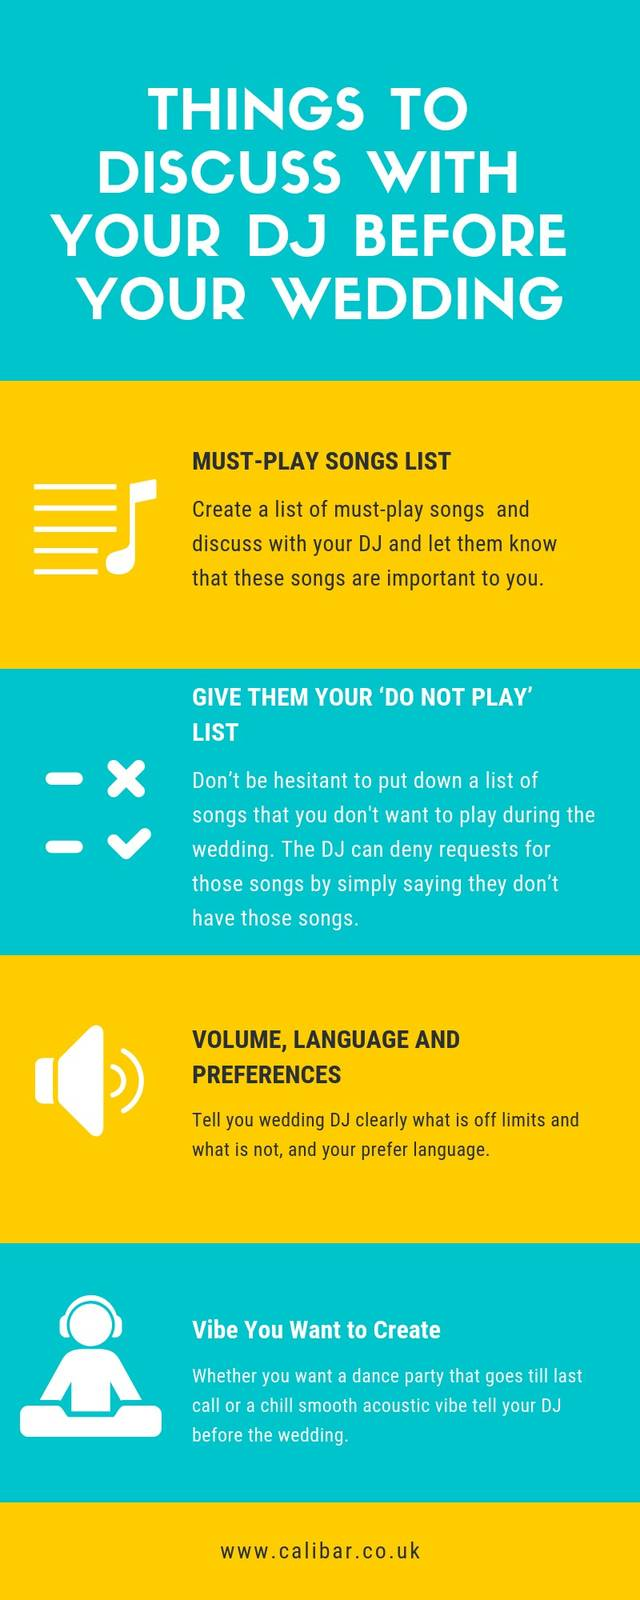 Things to discuss with your dj before your wedding